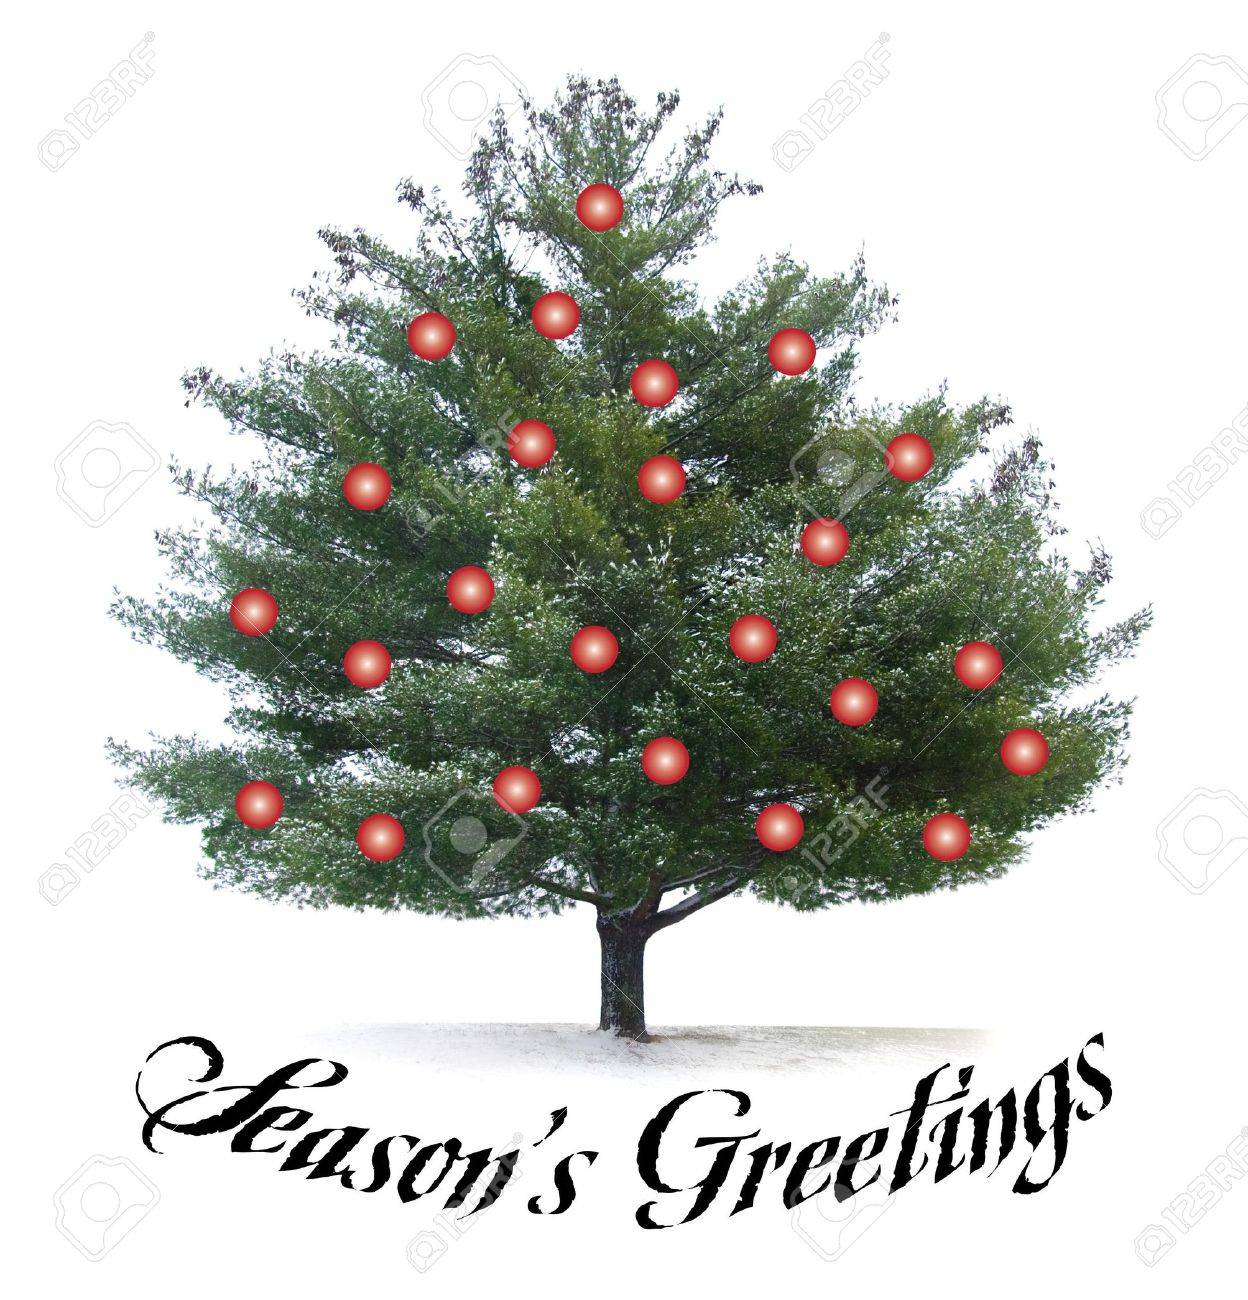 seasons greetings script type with pine tree and red christmas bulbs stock photo 8130982 - What Kind Of Trees Are Christmas Trees